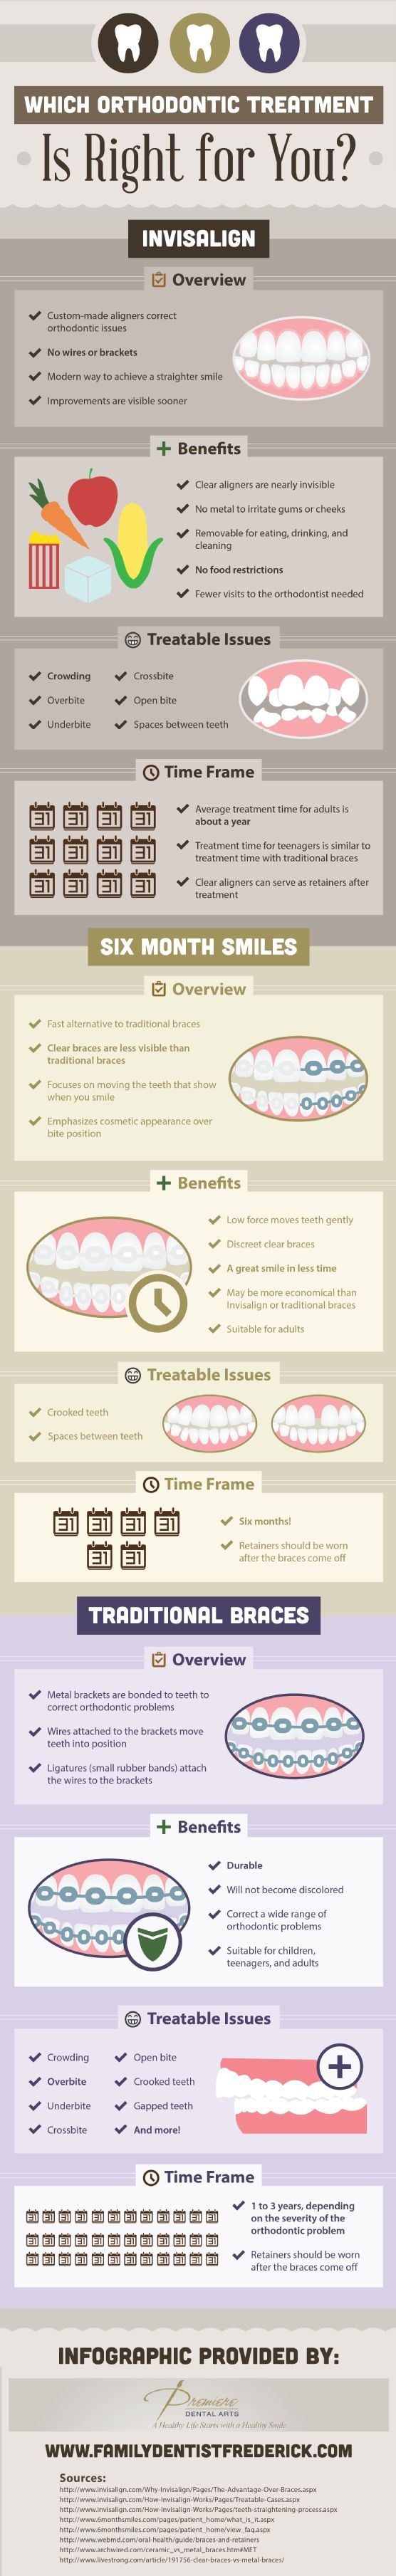 Which Orthodontic Treatment is Right for You? [INFOGRAPHIC]